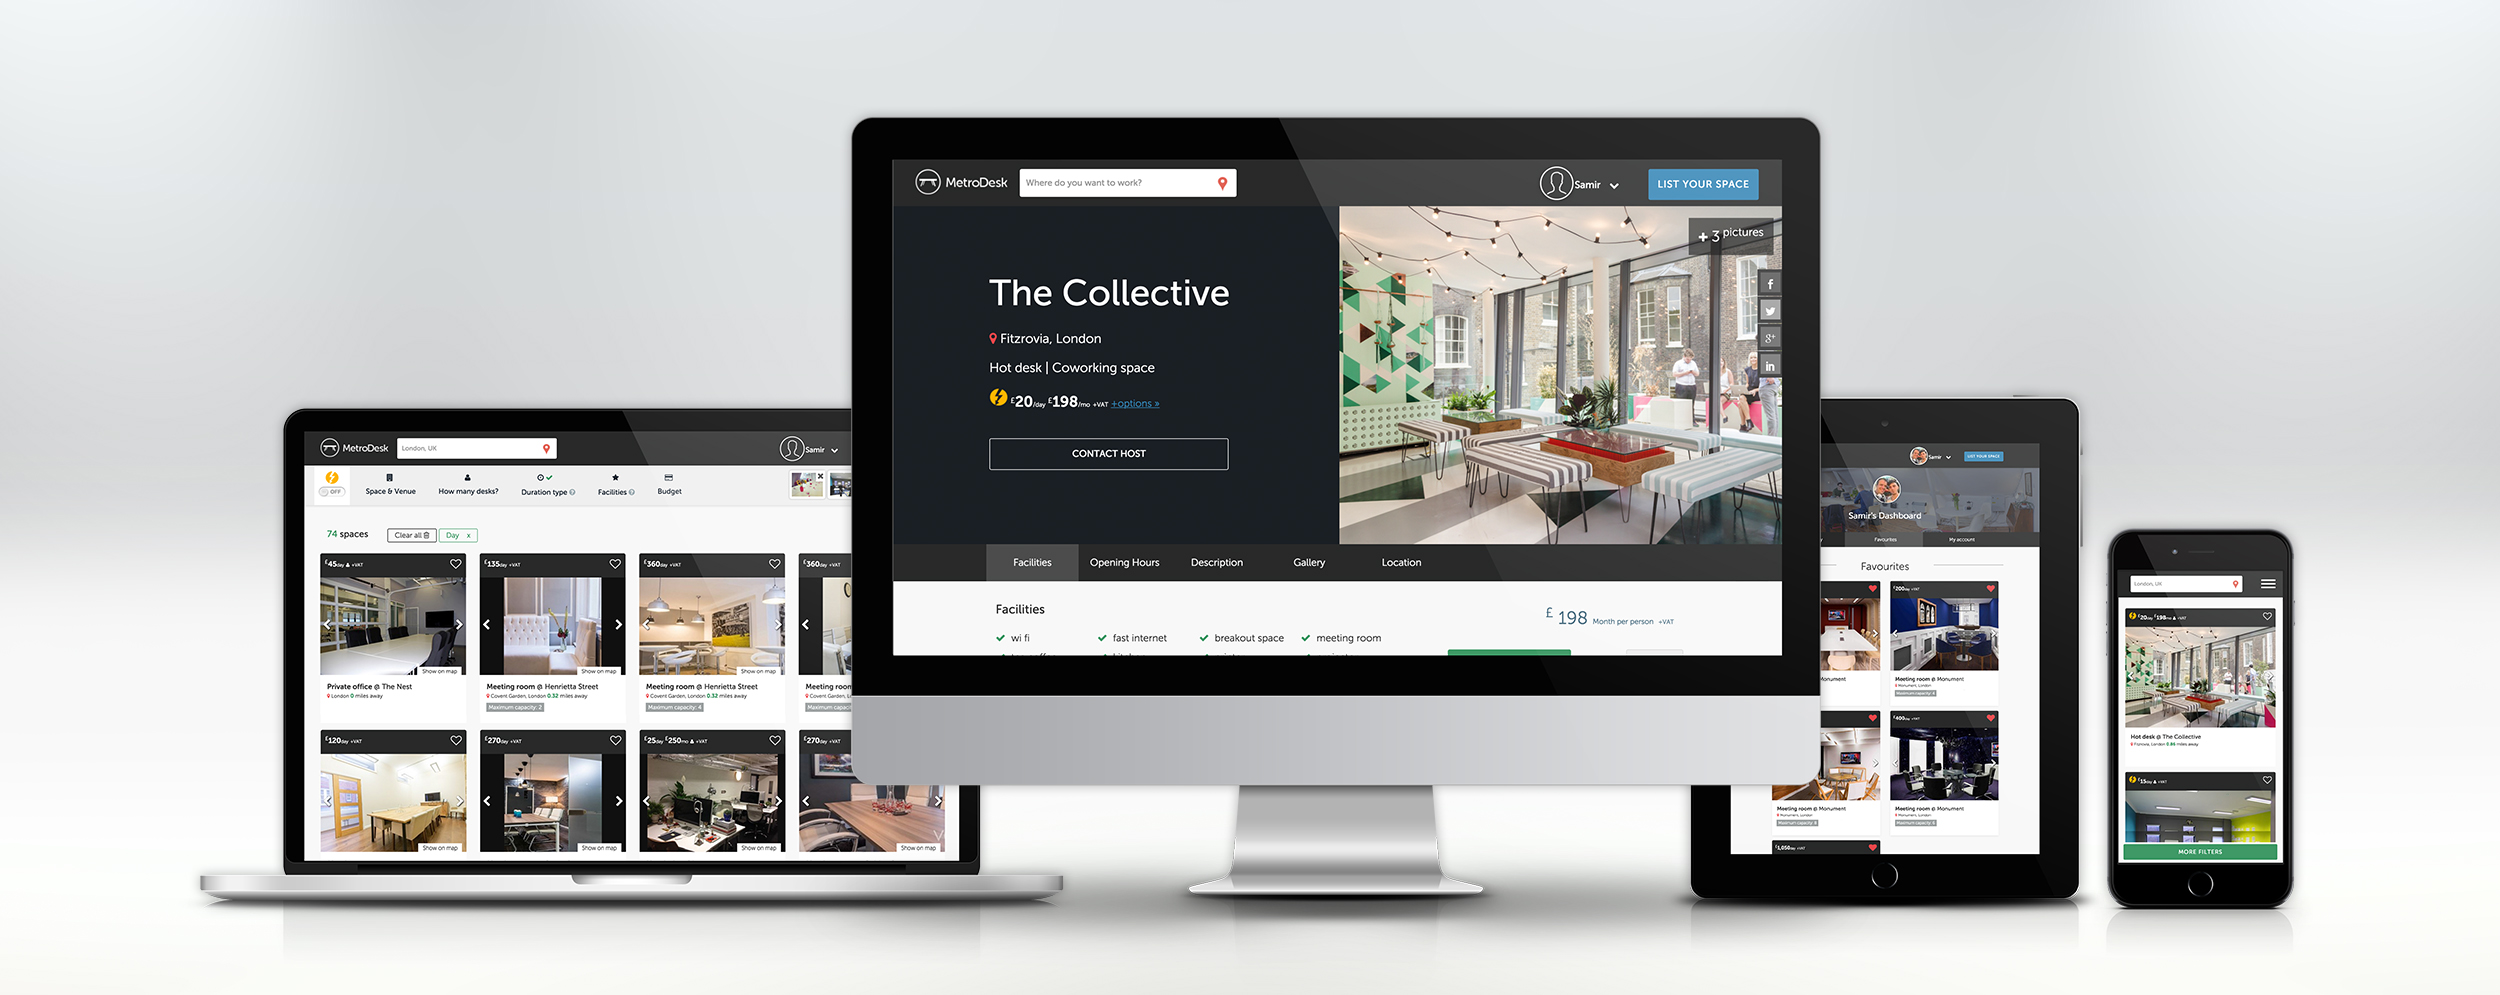 A responsive showcase of the live site.